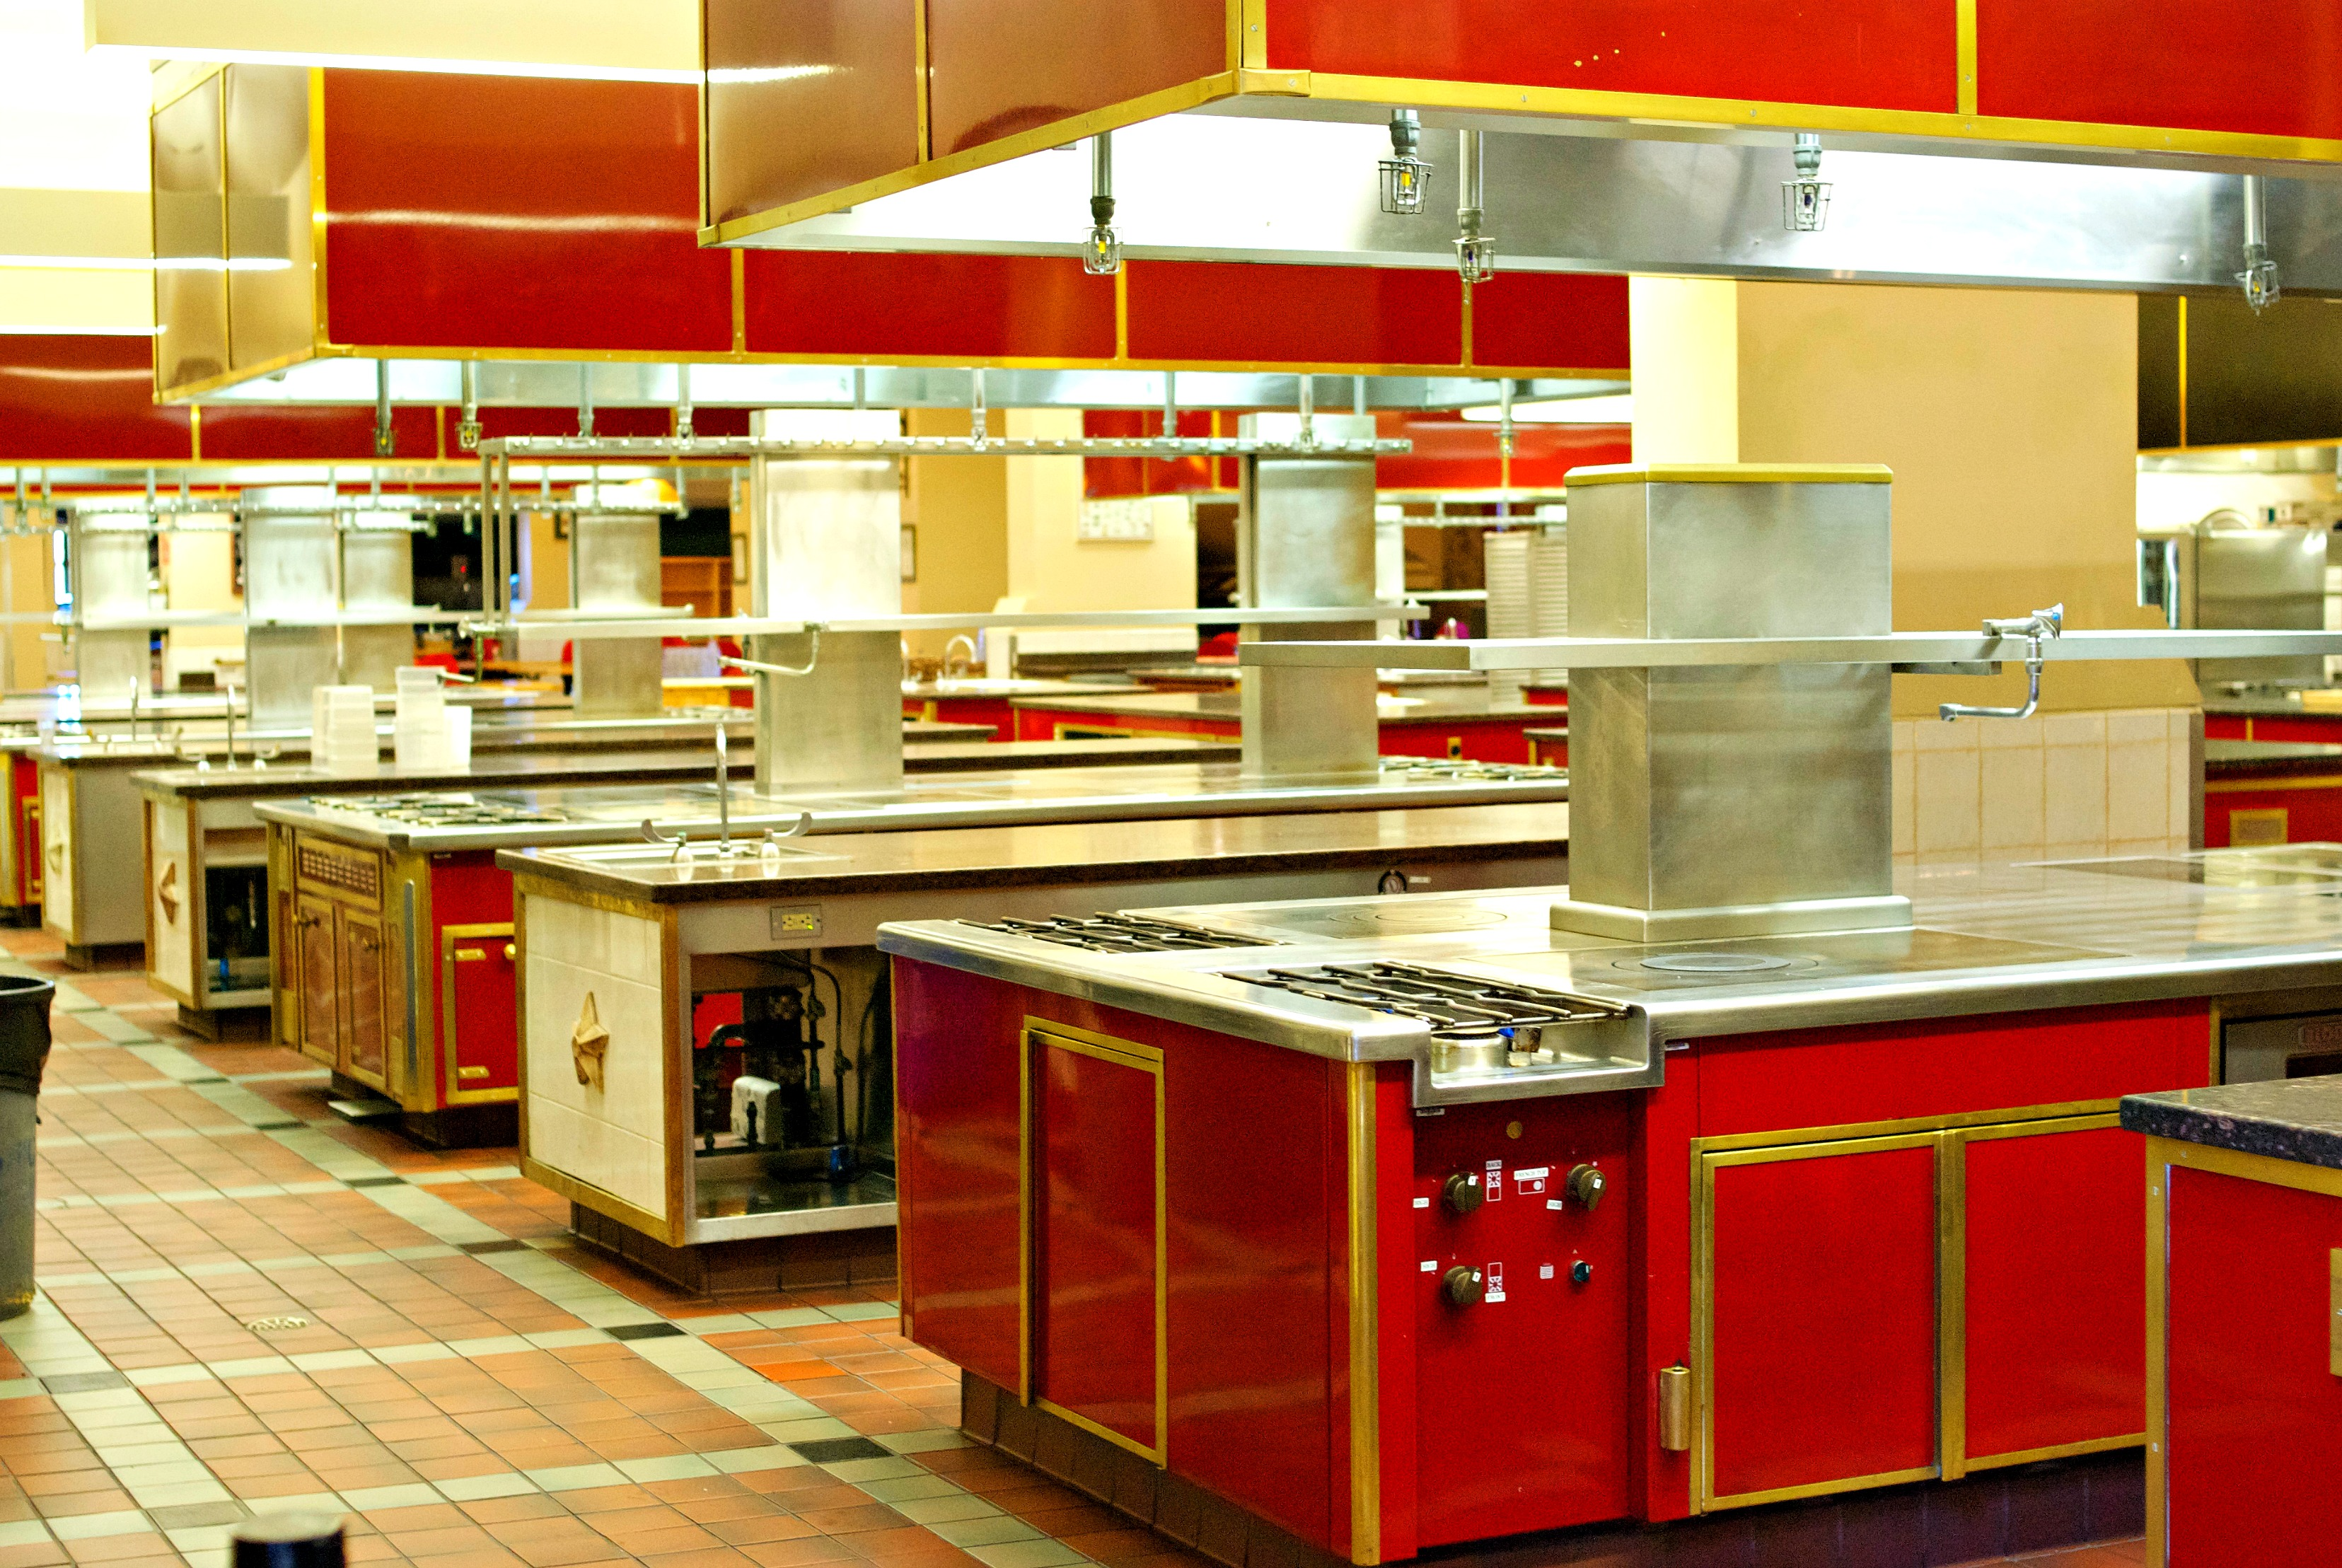 Culinary Institute of America red kitchens